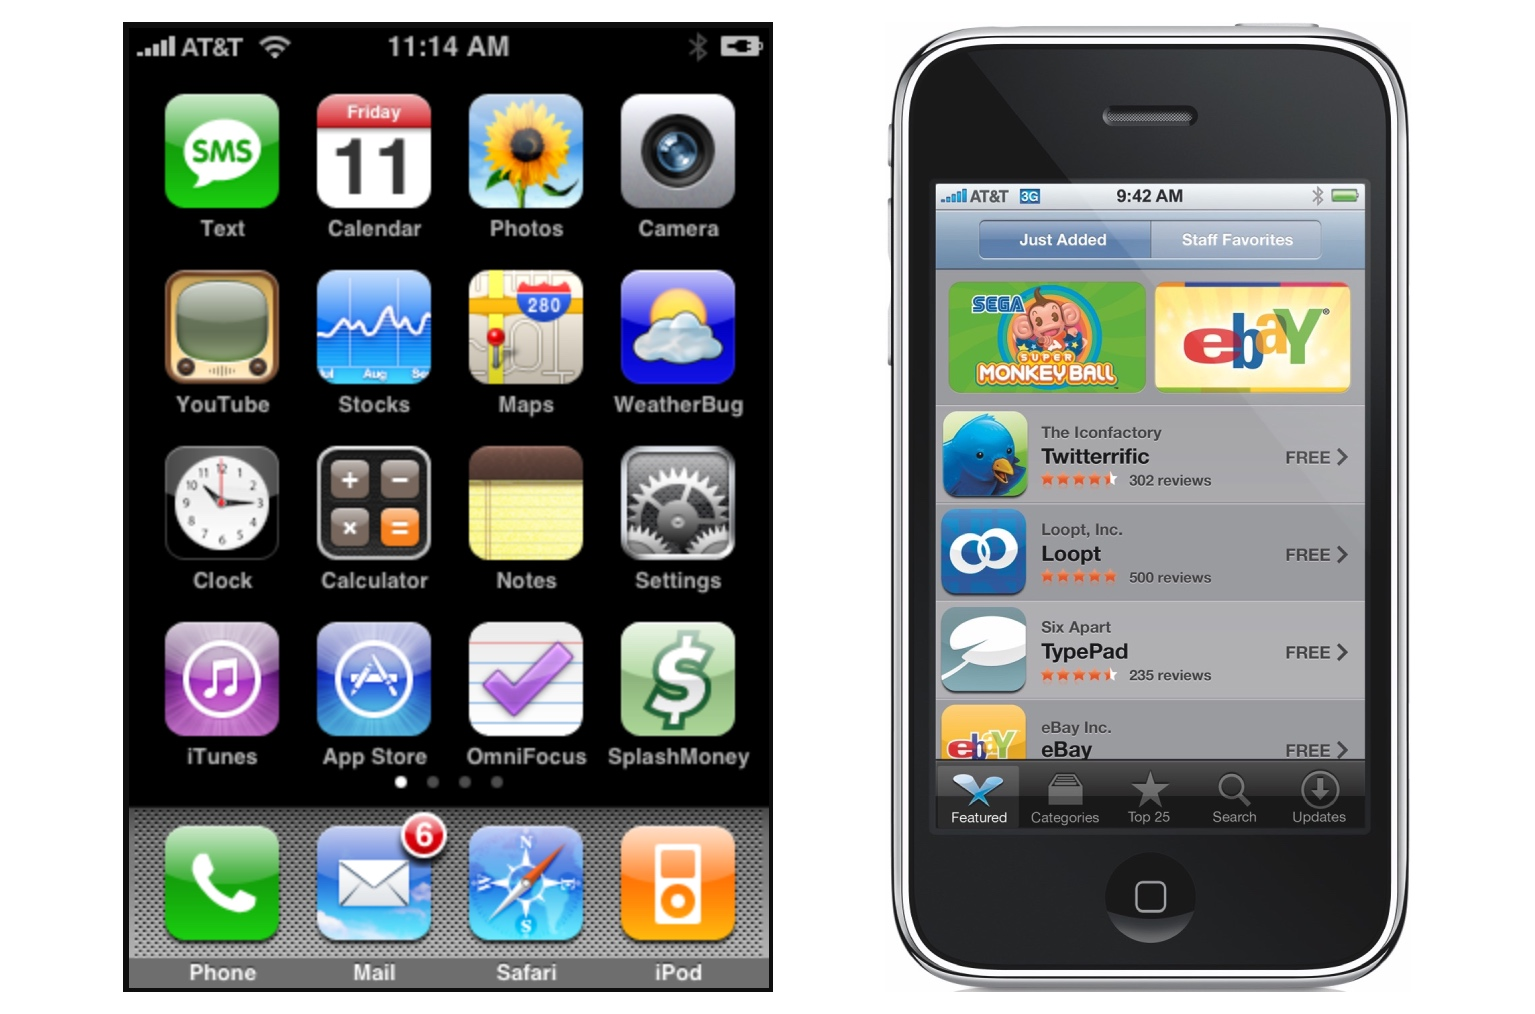 iPhone OS 2 Home screen and App Store on iPhone 3G (2008)